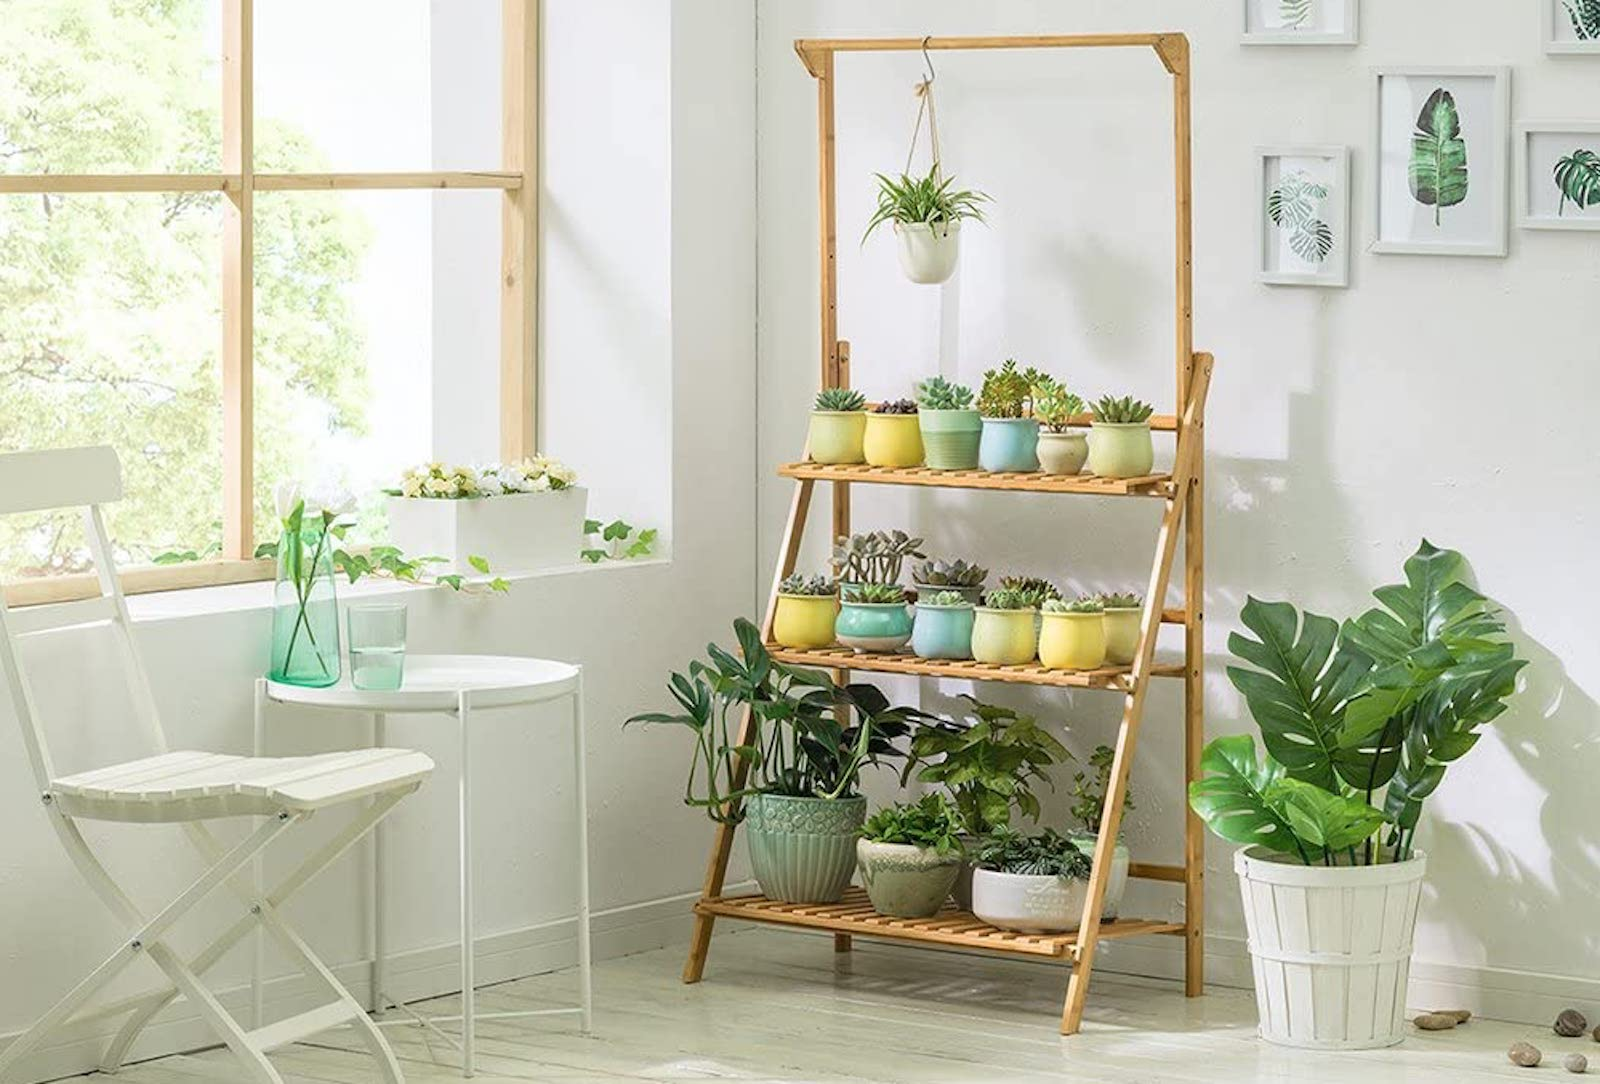 A sunny room with a three-tier wood plant stand, full of colorful pots of plants